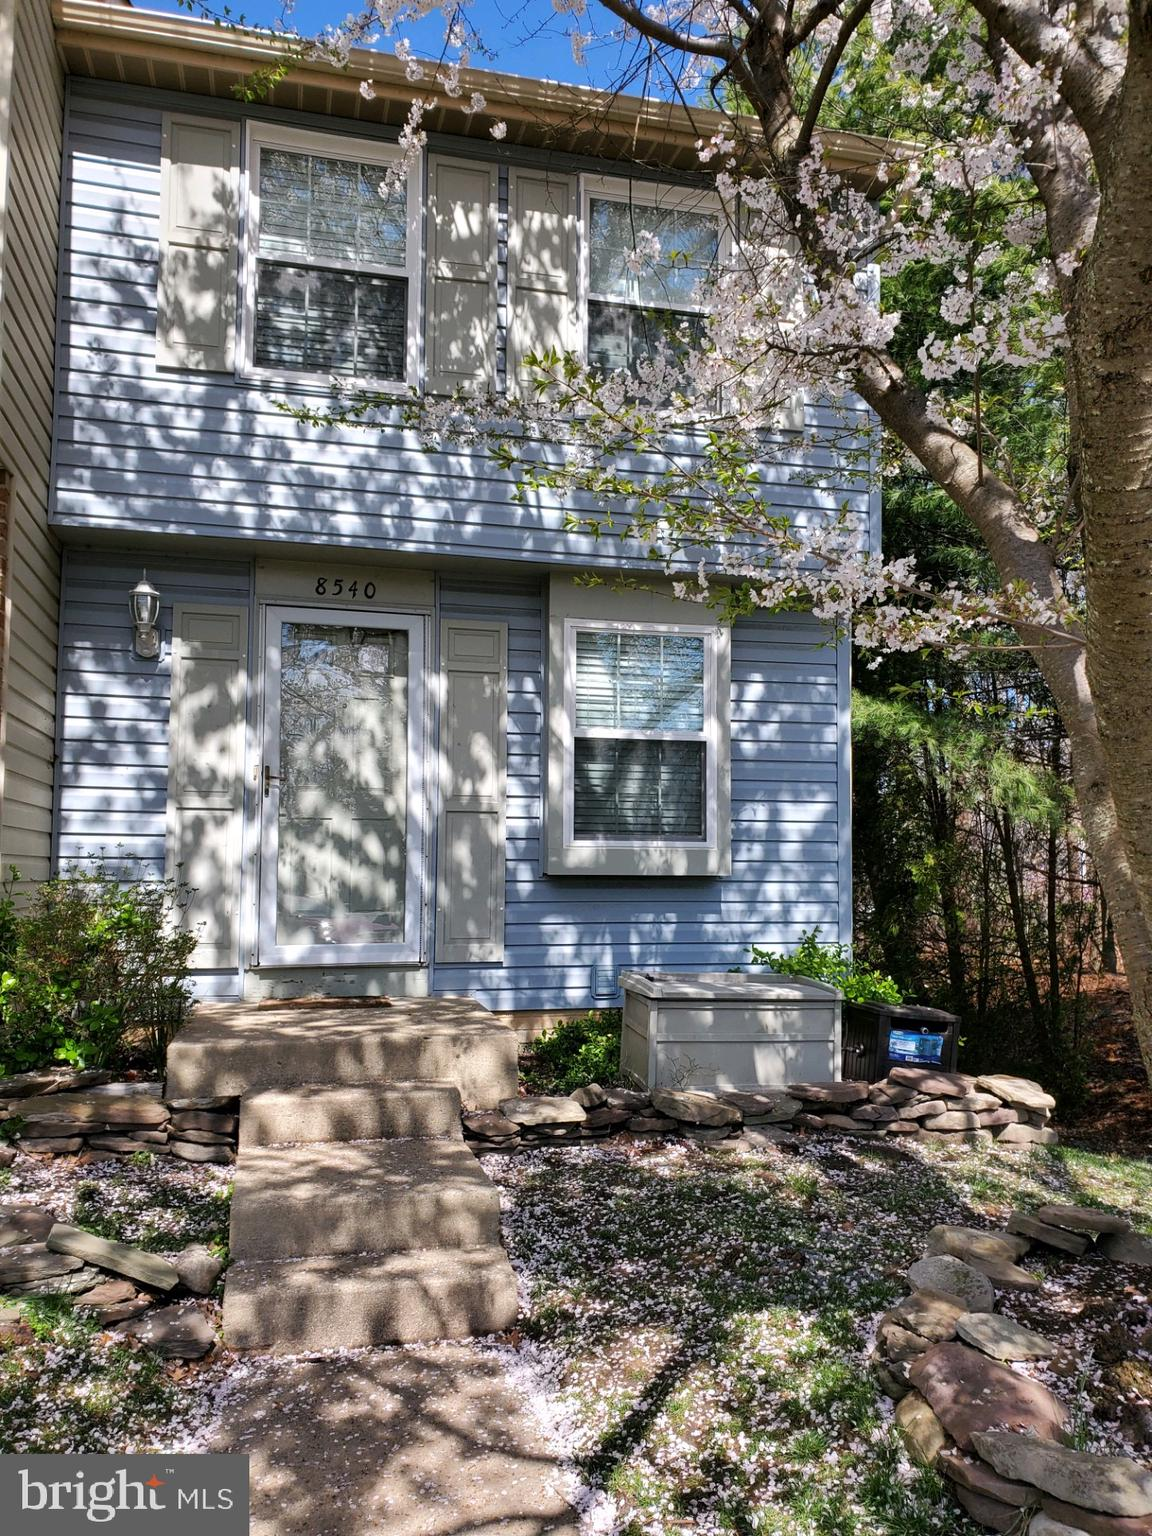 * MULTIPLE OFFERS RECEIVED* End unit townhouse in Newington Heights available immediately! Freshly painted, brand new carpet. Roof, siding, gutters replaced 2016, windows 2017, water heater 2018. Two large bedrooms upstairs w/ full bath, finished basement with bath steps out to patio with fenced in yard. Minutes to 95/VRE/shopping/restaurants.